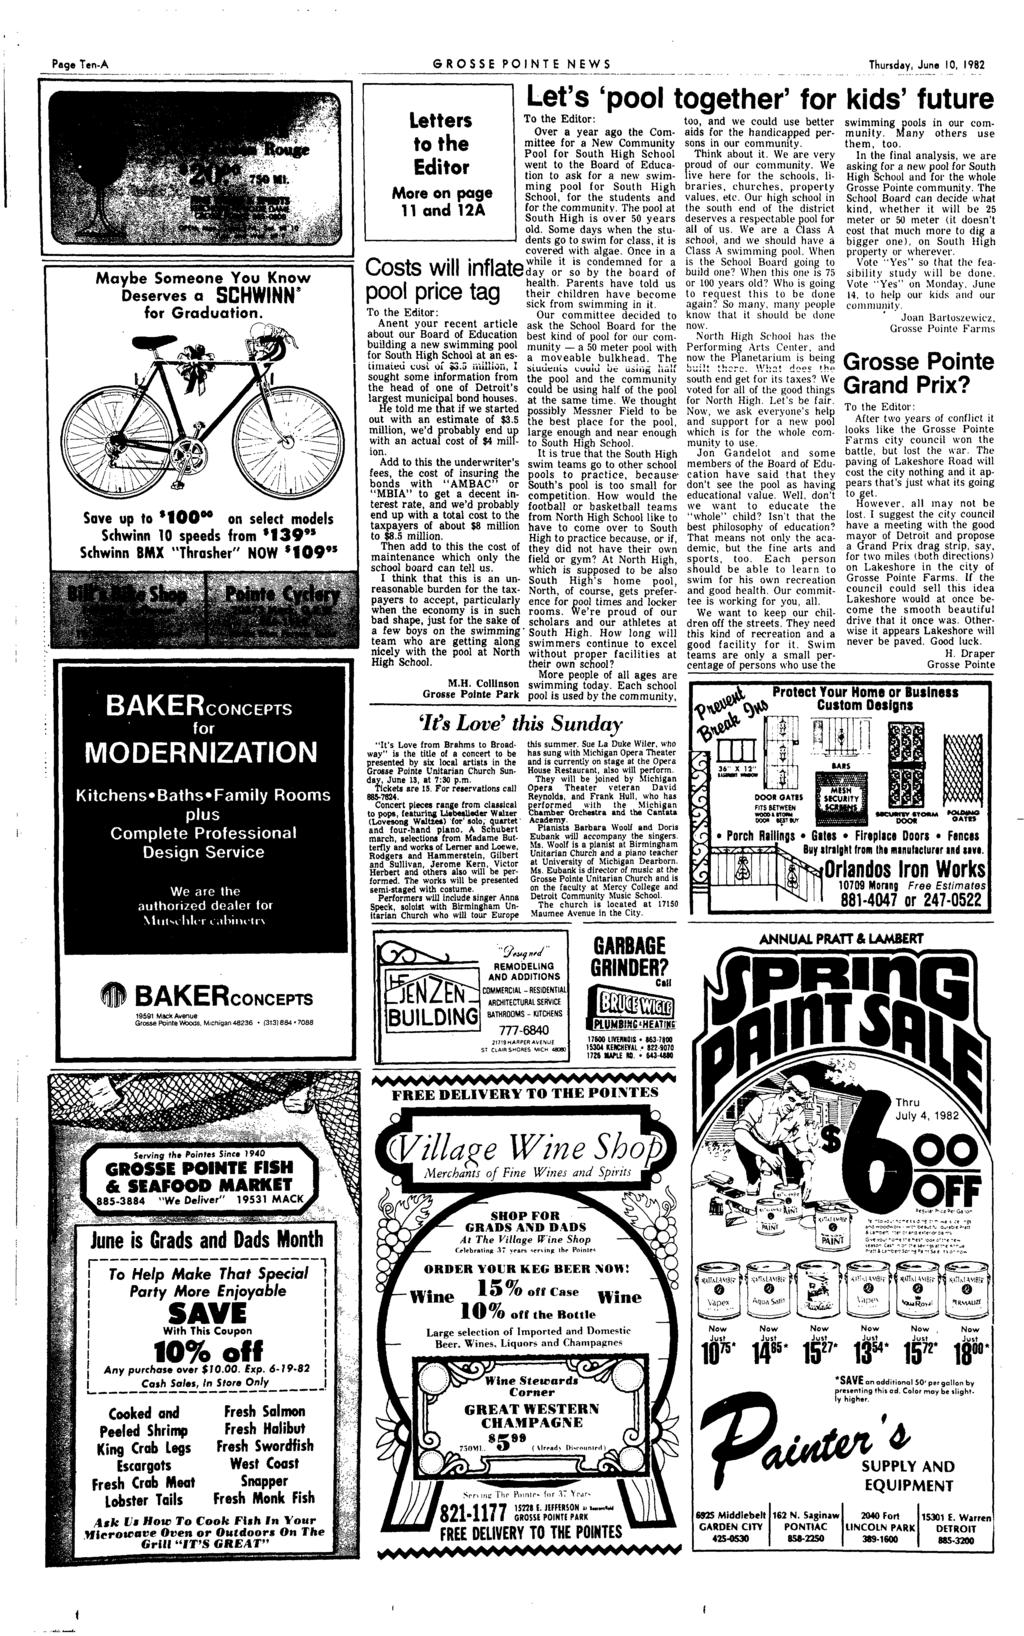 "Page Ten-A ------------ -- ---- - - - -- - -------""-'-"" - Save up to '100 00 on select models Schwinn 10 speeds from '139"" Schwinn 8M ""Thrasher"" NOW '109's BAKERcONCEPTS 19591 Mack Alleflue Grosse"